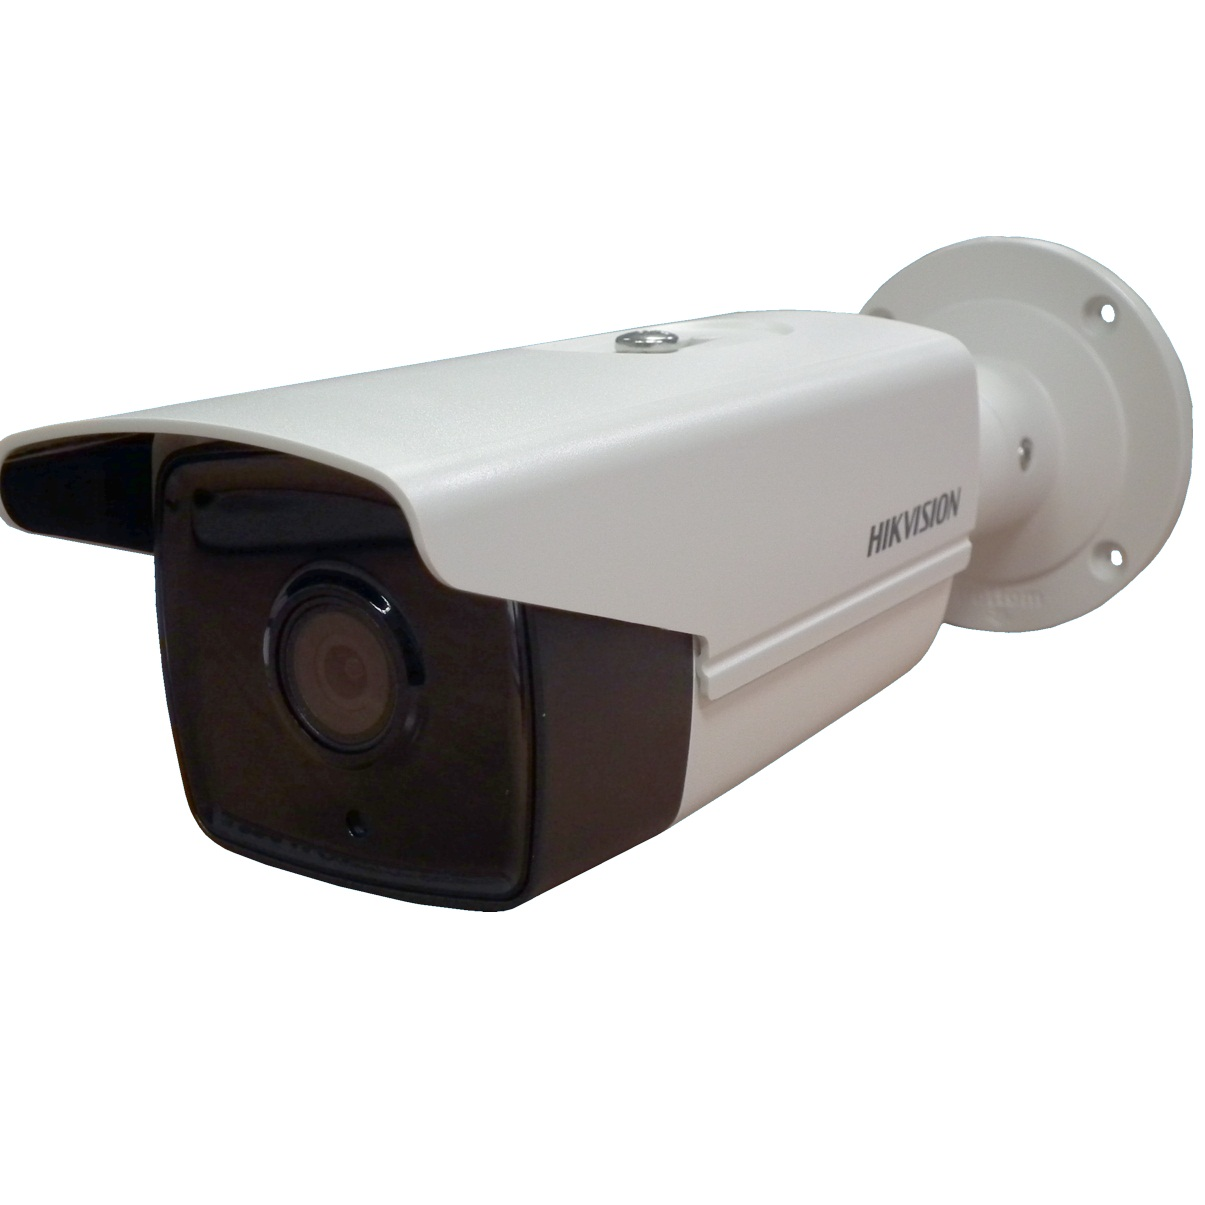 Camera Turbo HD 1080p IR 40m 3.6mm Hikvision DS-2CE16D1T-IT3